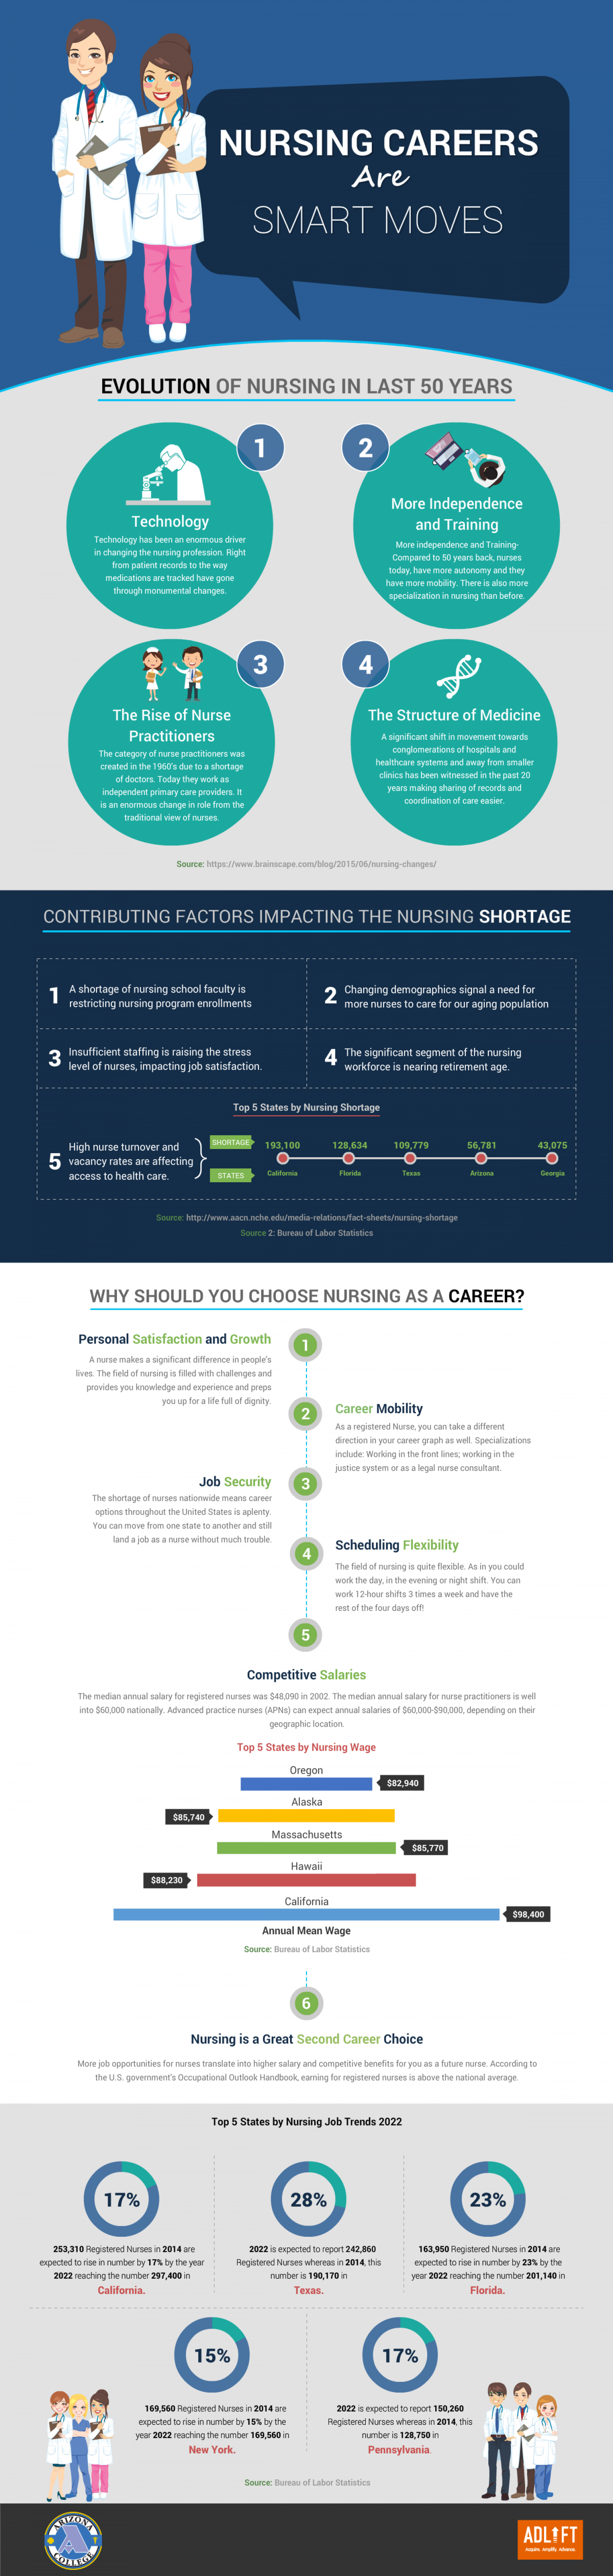 career choice paper Learn how holland's theory helps you choose a career, career pathway or college major that best fits you make a confident career choice.